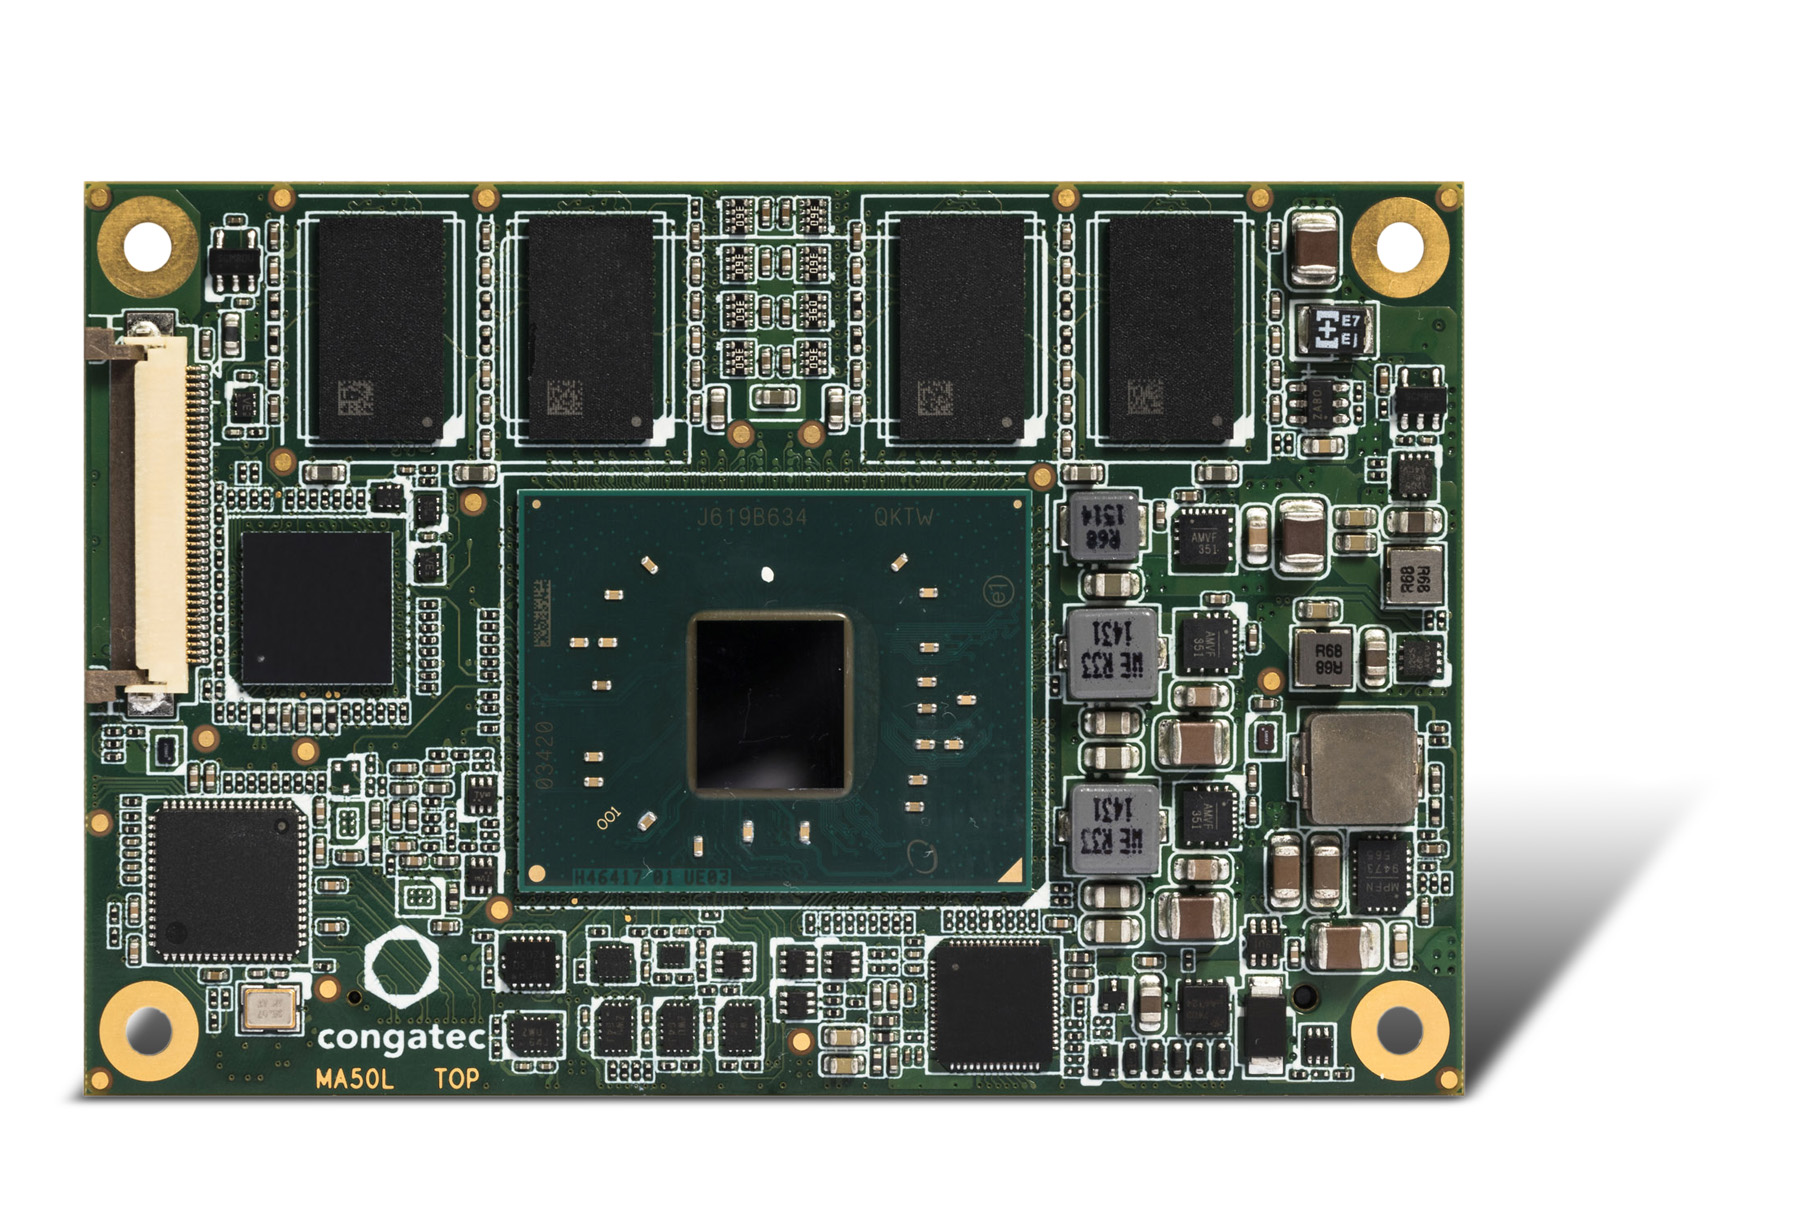 COM Express Mini module offers more than any module before